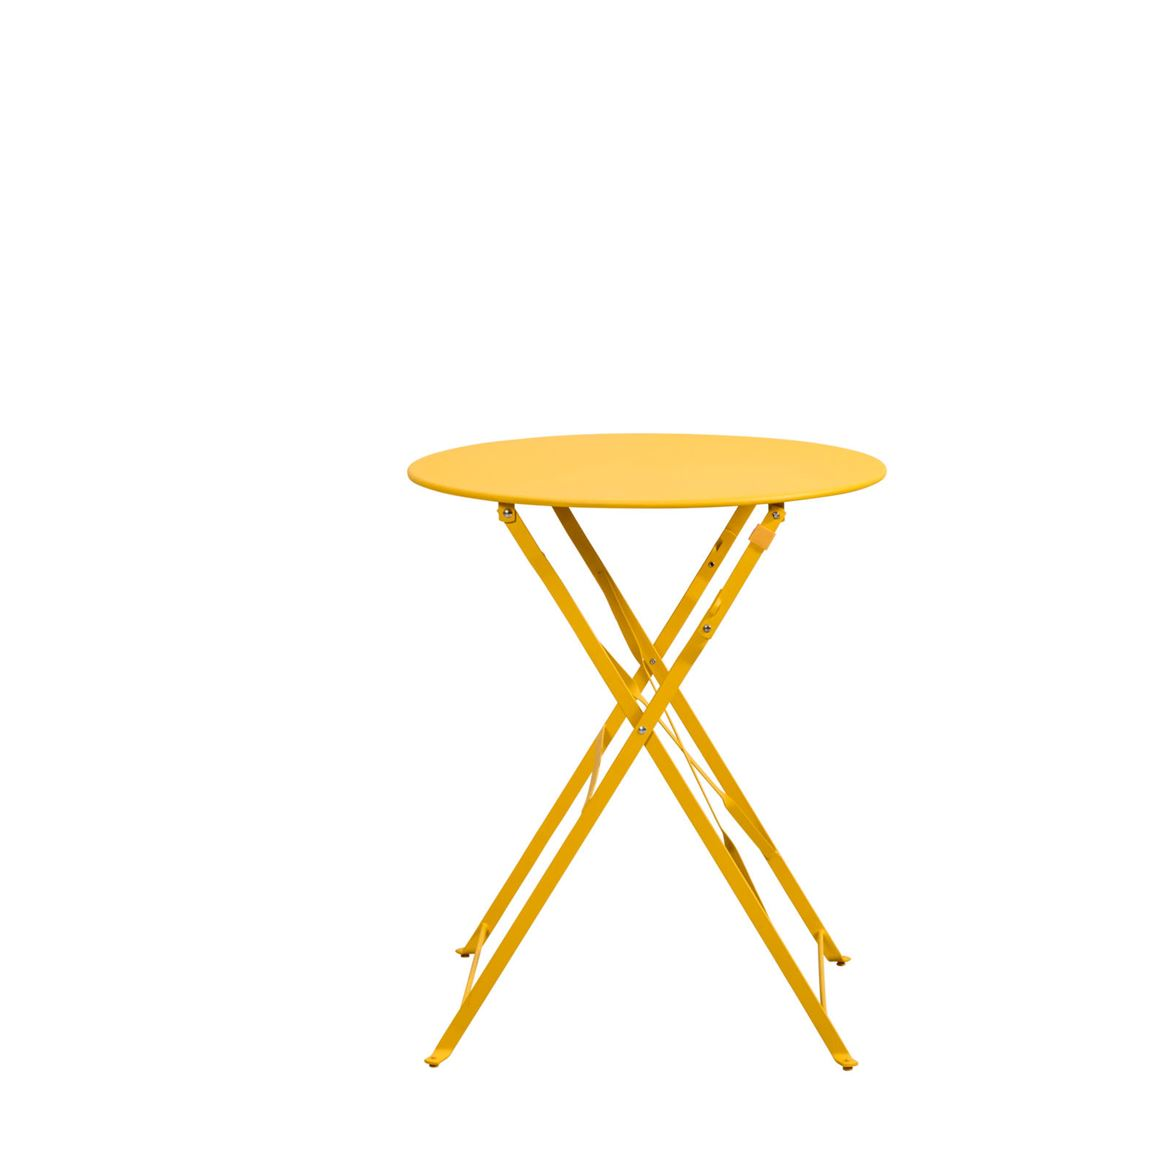 IMPERIAL Table bistrot jaune H 71 cm; Ø 60 cm_imperial-table-bistrot-jaune-h-71-cm;-ø-60-cm